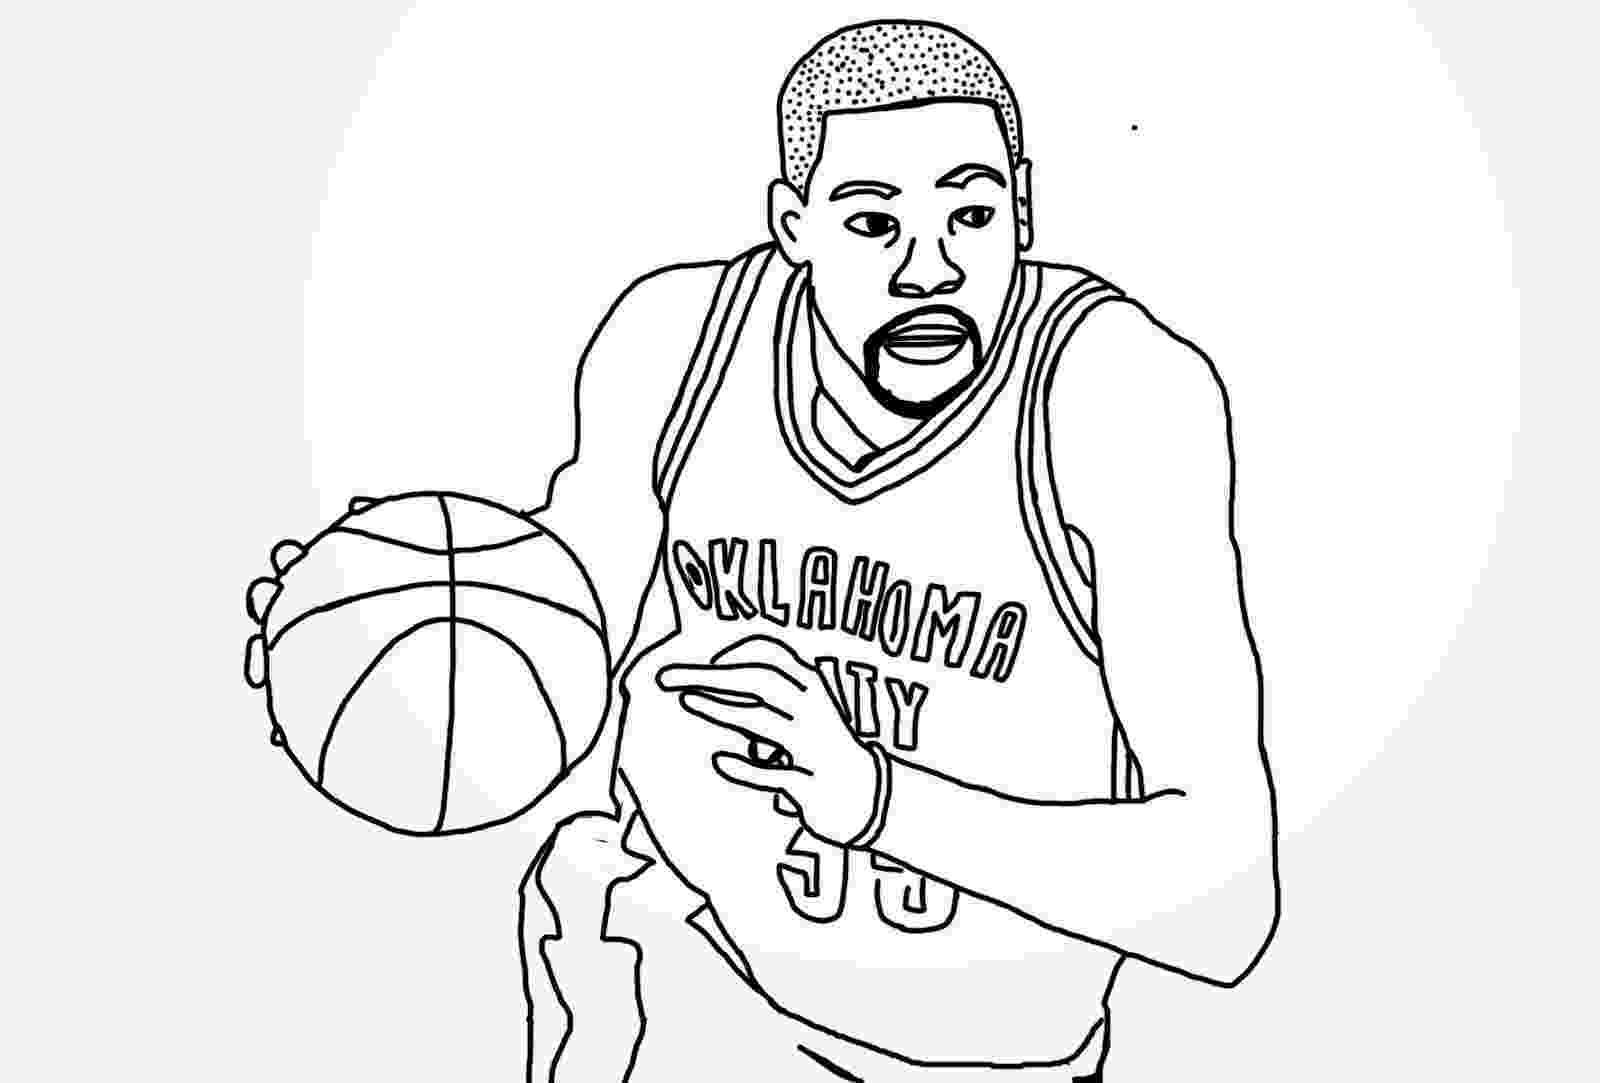 lebron james coloring pages lebron james coloring pages free printable coloring pages lebron james pages coloring